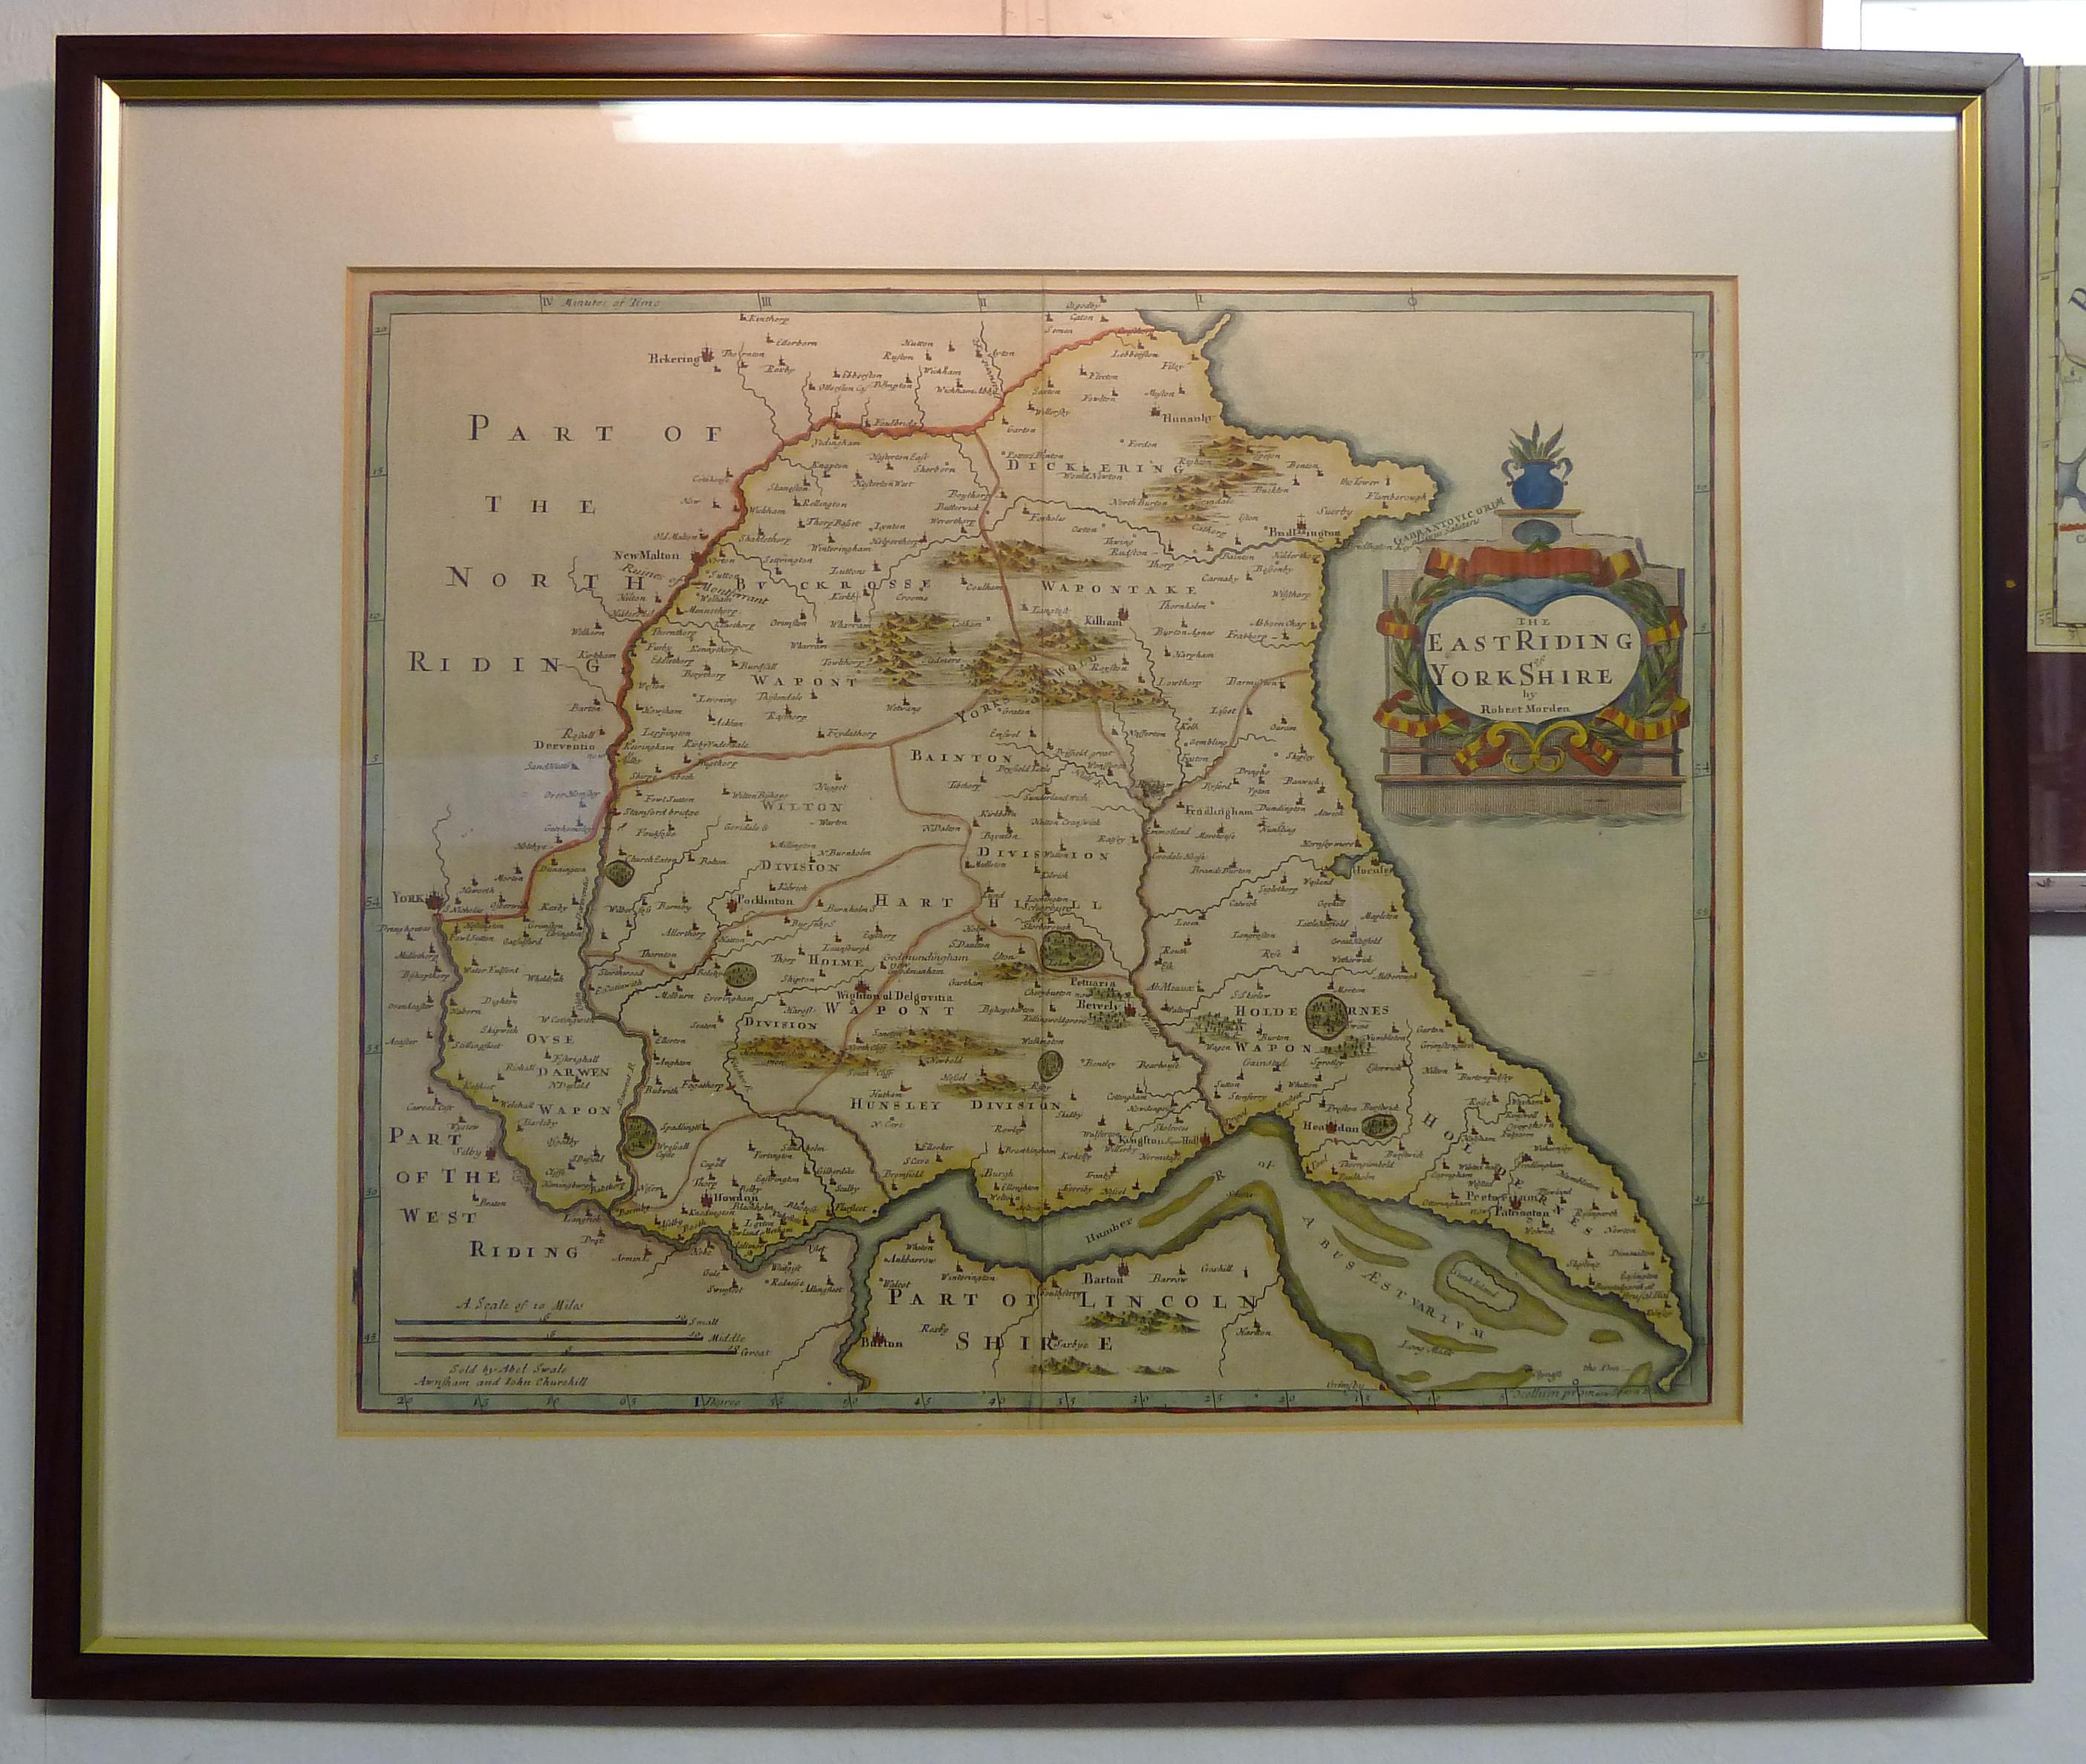 Robert Morden Map of East Riding Yorkshire